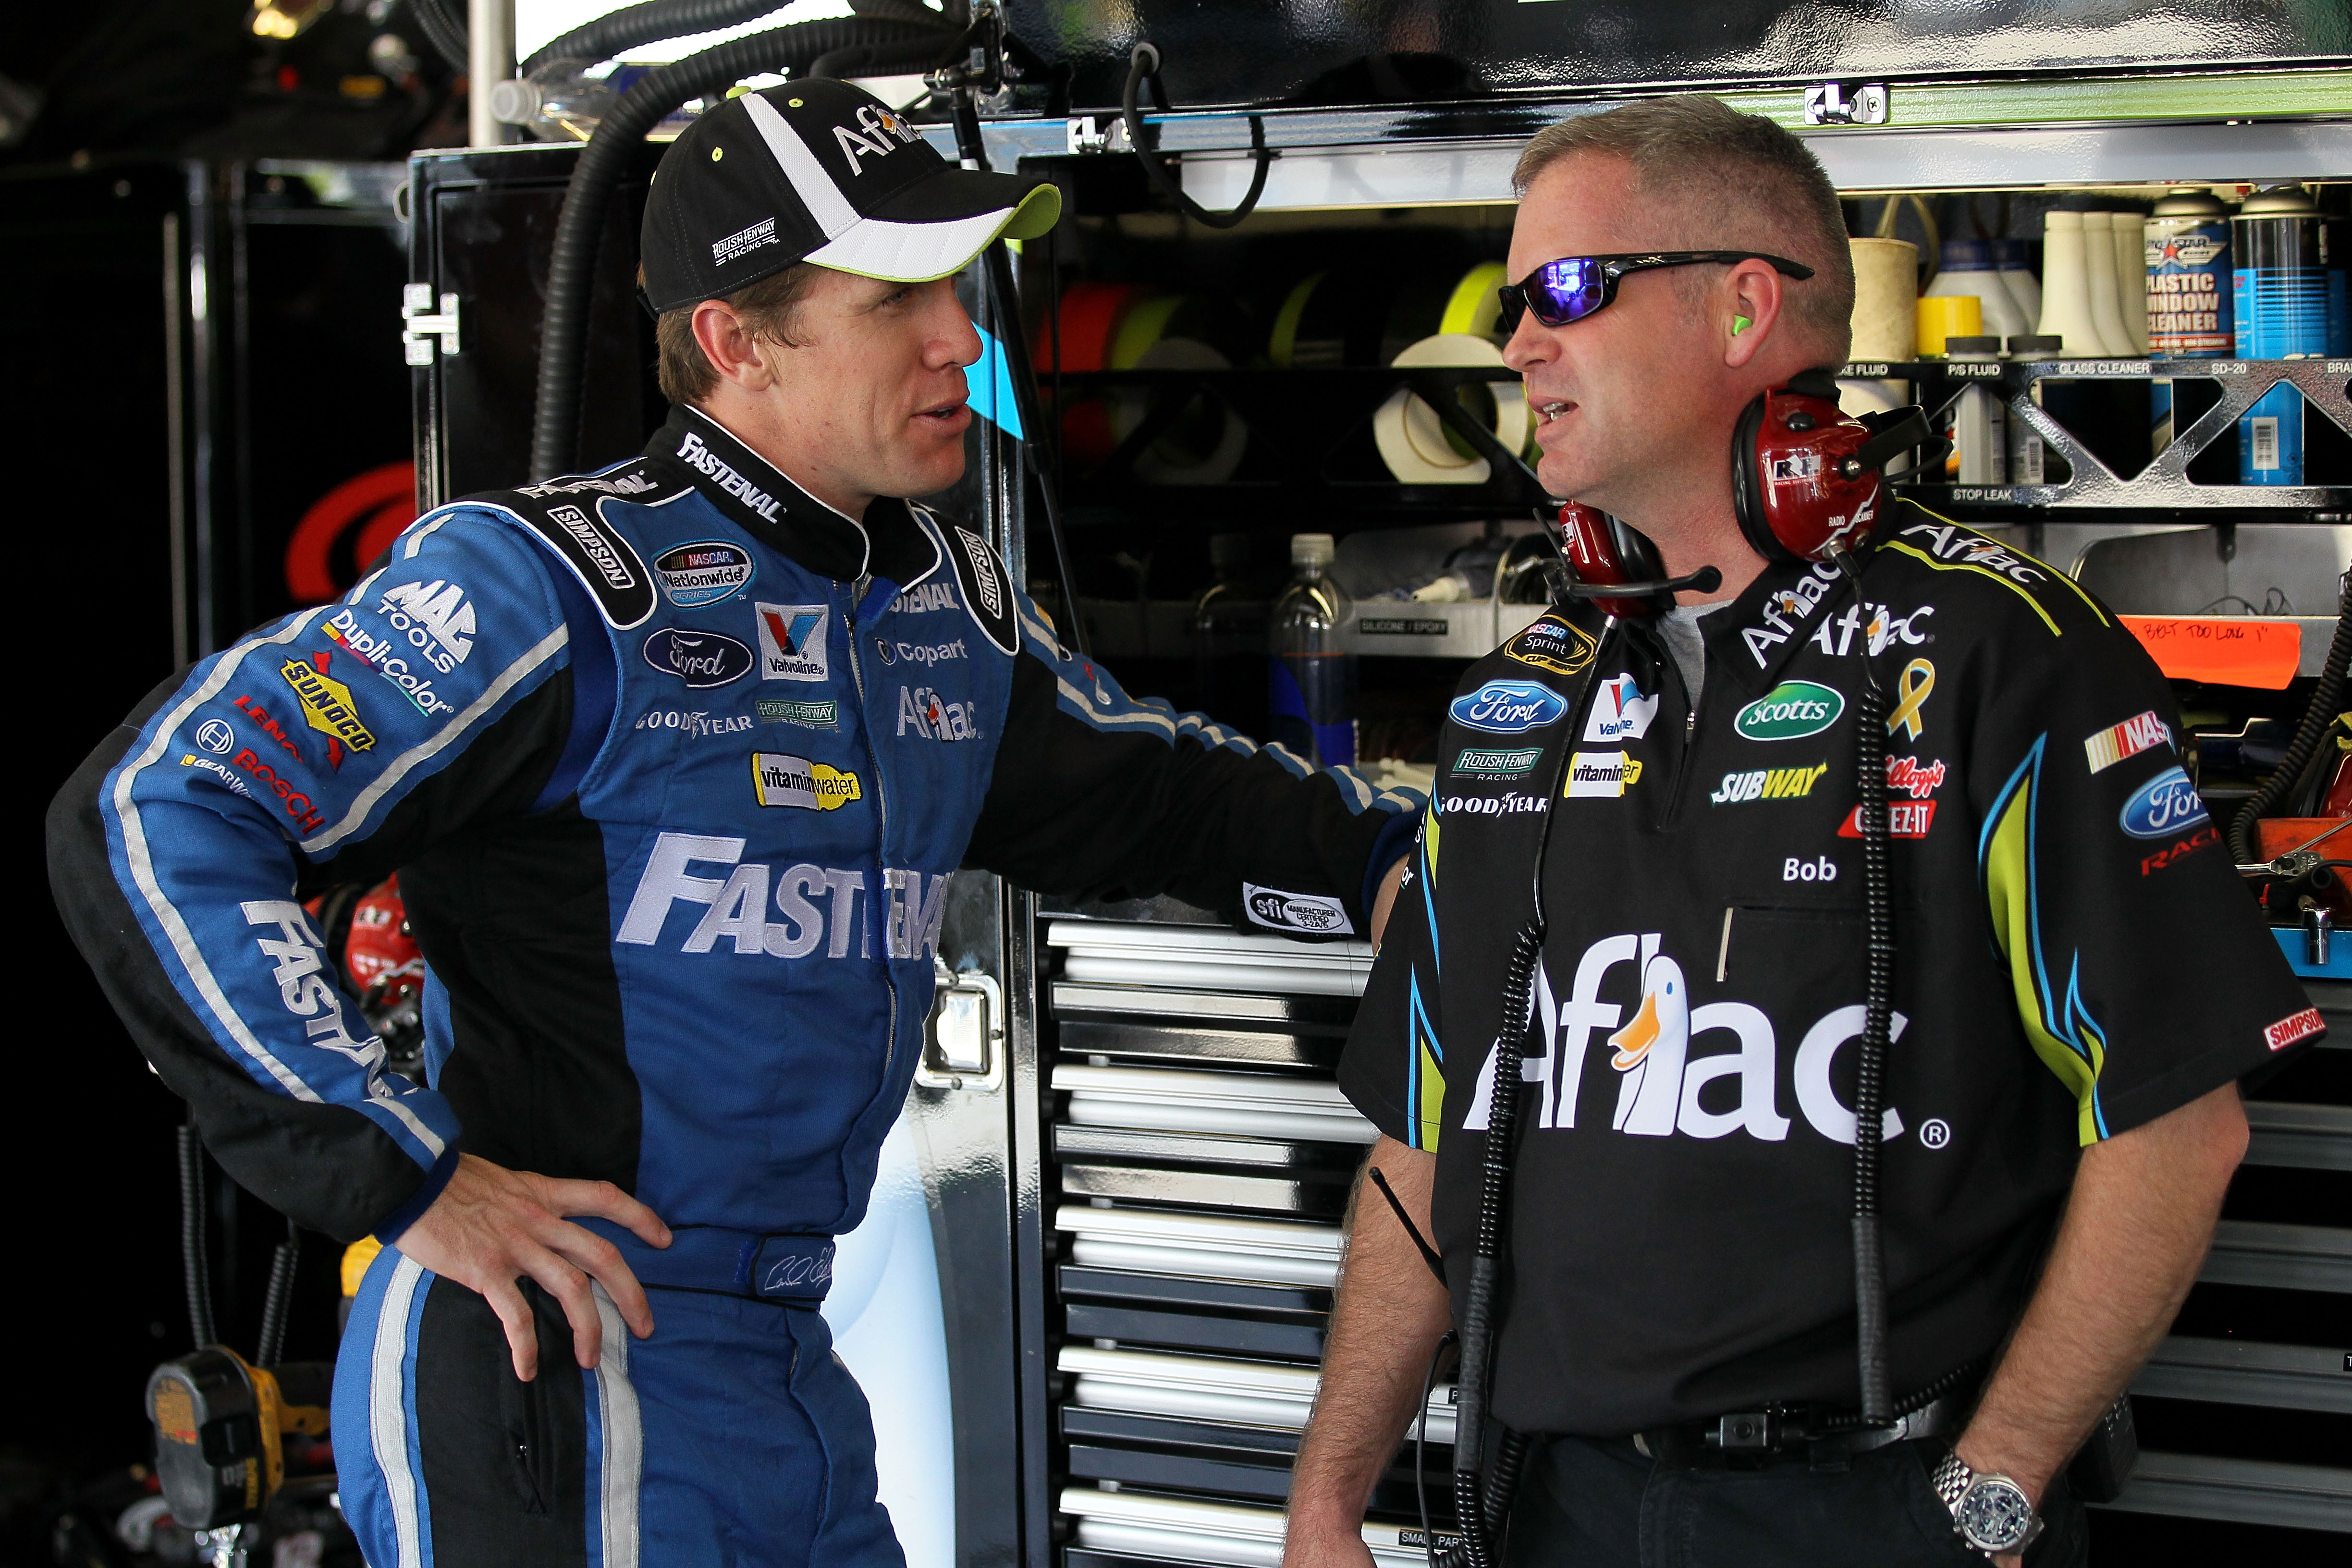 JOLIET, IL - JULY 09:  Carl Edwards (L), driver of the #99 Aflac Silver Ford, talks with crew chief Bob Osborne during practice for the NASCAR Sprint Cup Series LIFELOCK.COM 400 at the Chicagoland Speedway on July 9, 2010 in Joliet, Illinois.  (Photo by A